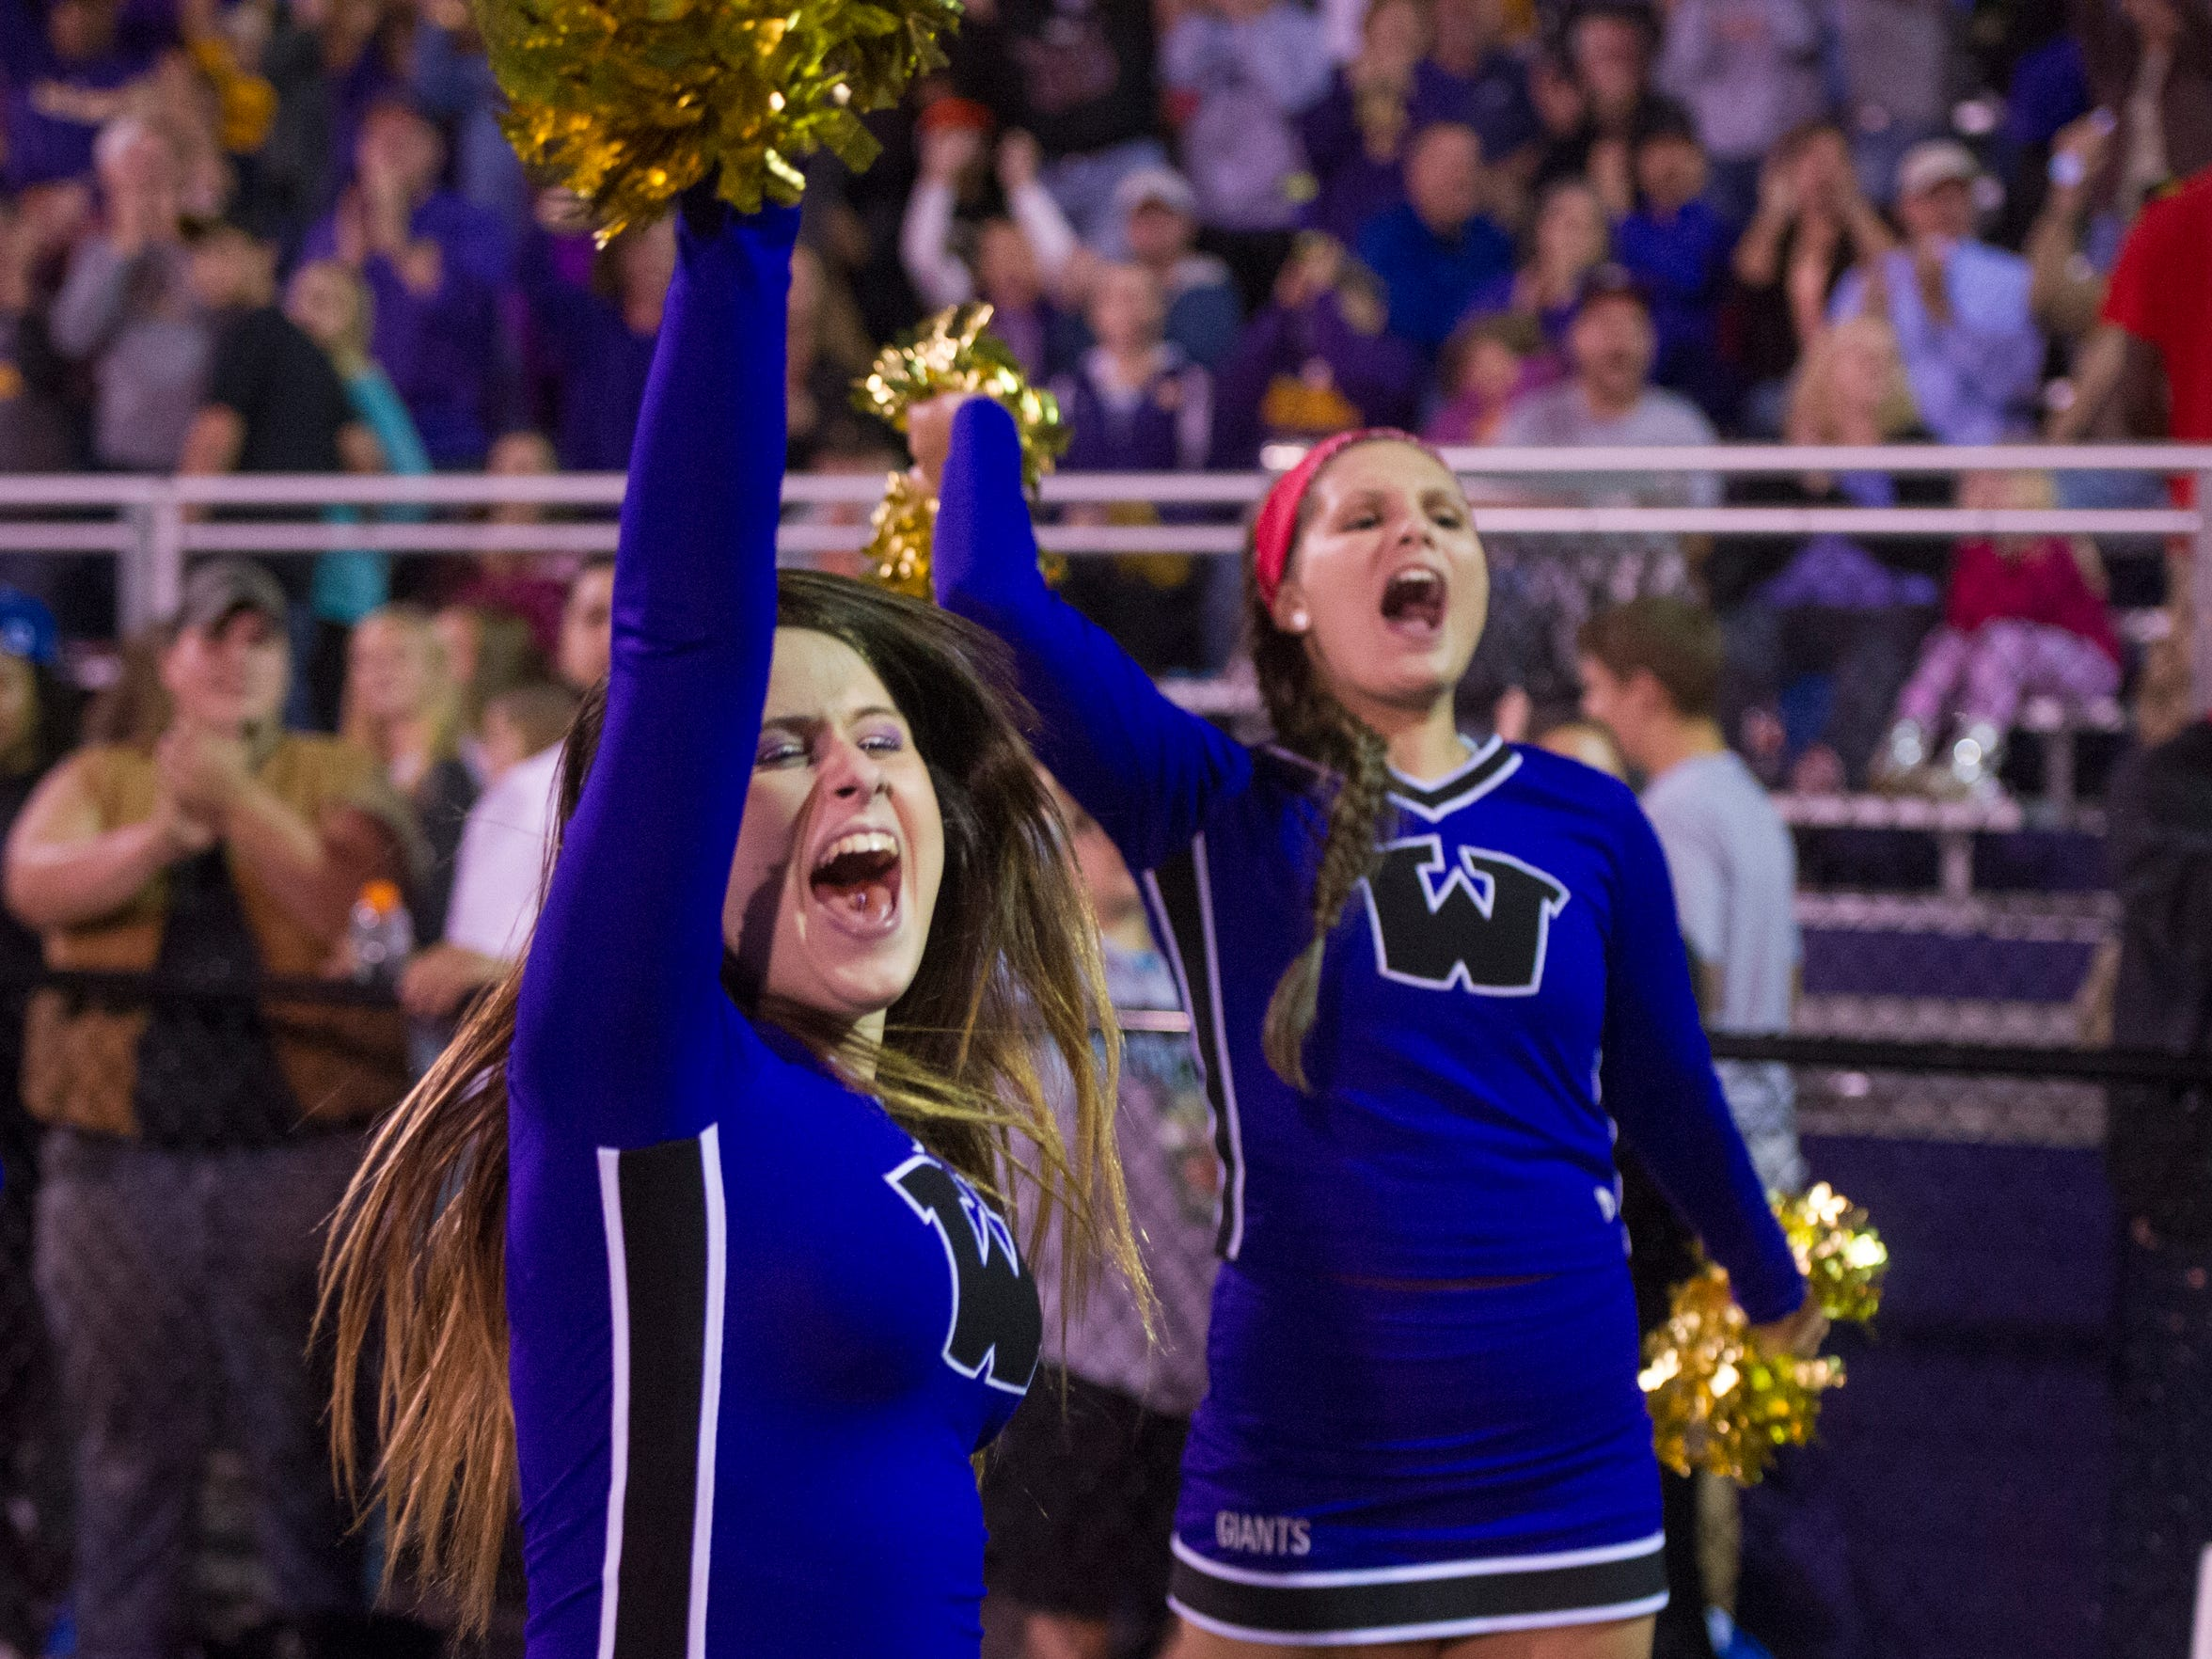 Waynesboro cheerleaders celebrate a touchdown during